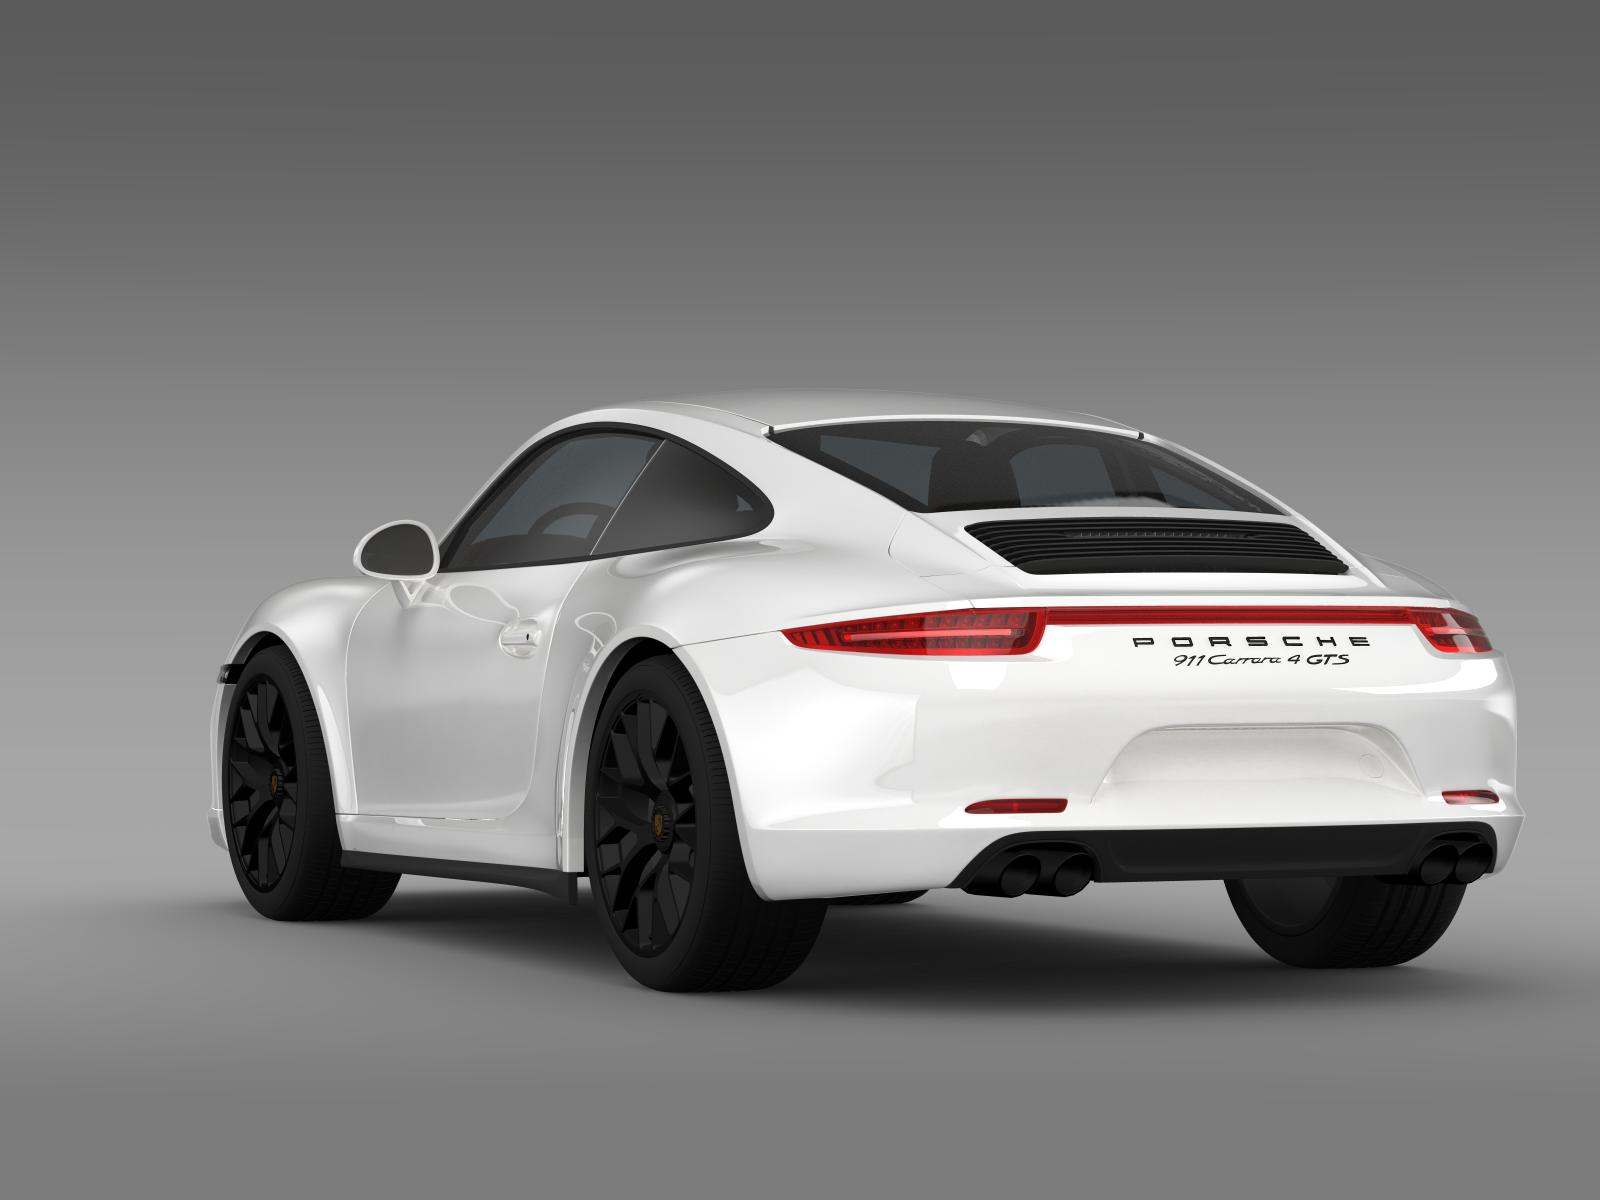 porsche 911 carrera 4 gts coupe 991 2015 3d model buy. Black Bedroom Furniture Sets. Home Design Ideas